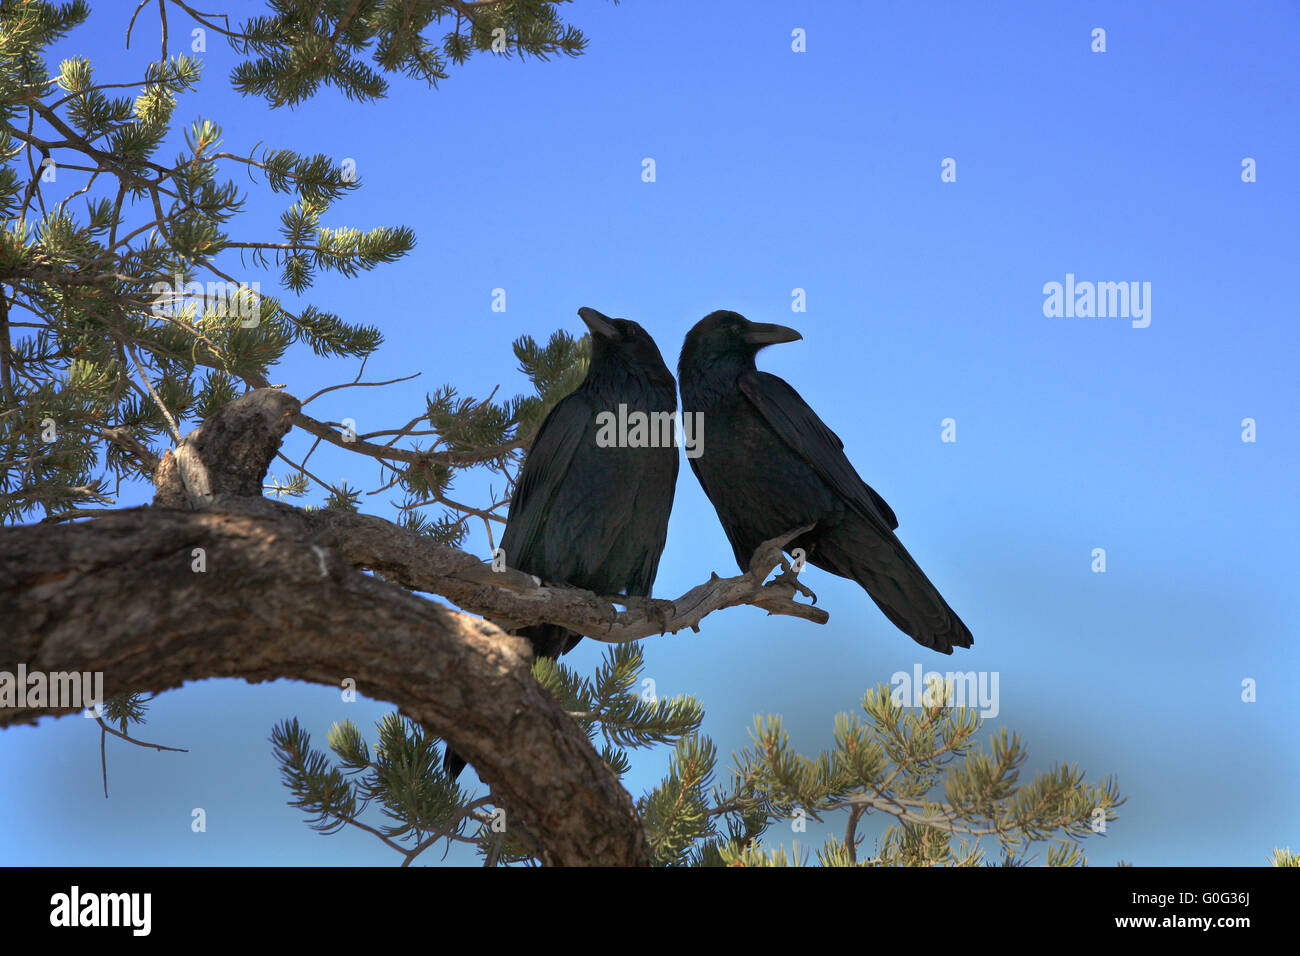 A pair of ravens ina tree in Northamerica - Stock Image